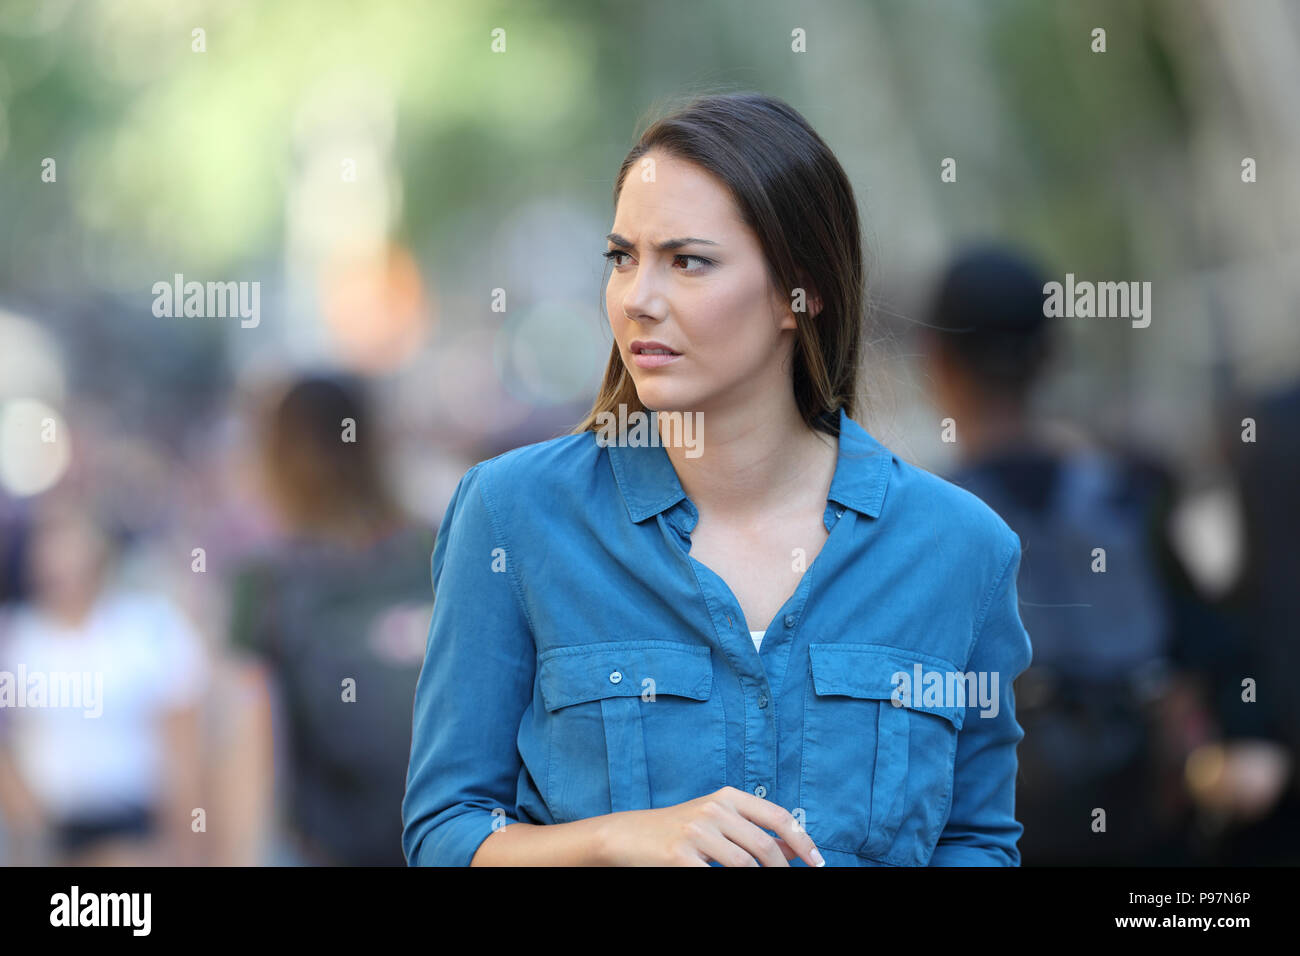 Anxious woman walking on the street looking at side - Stock Image